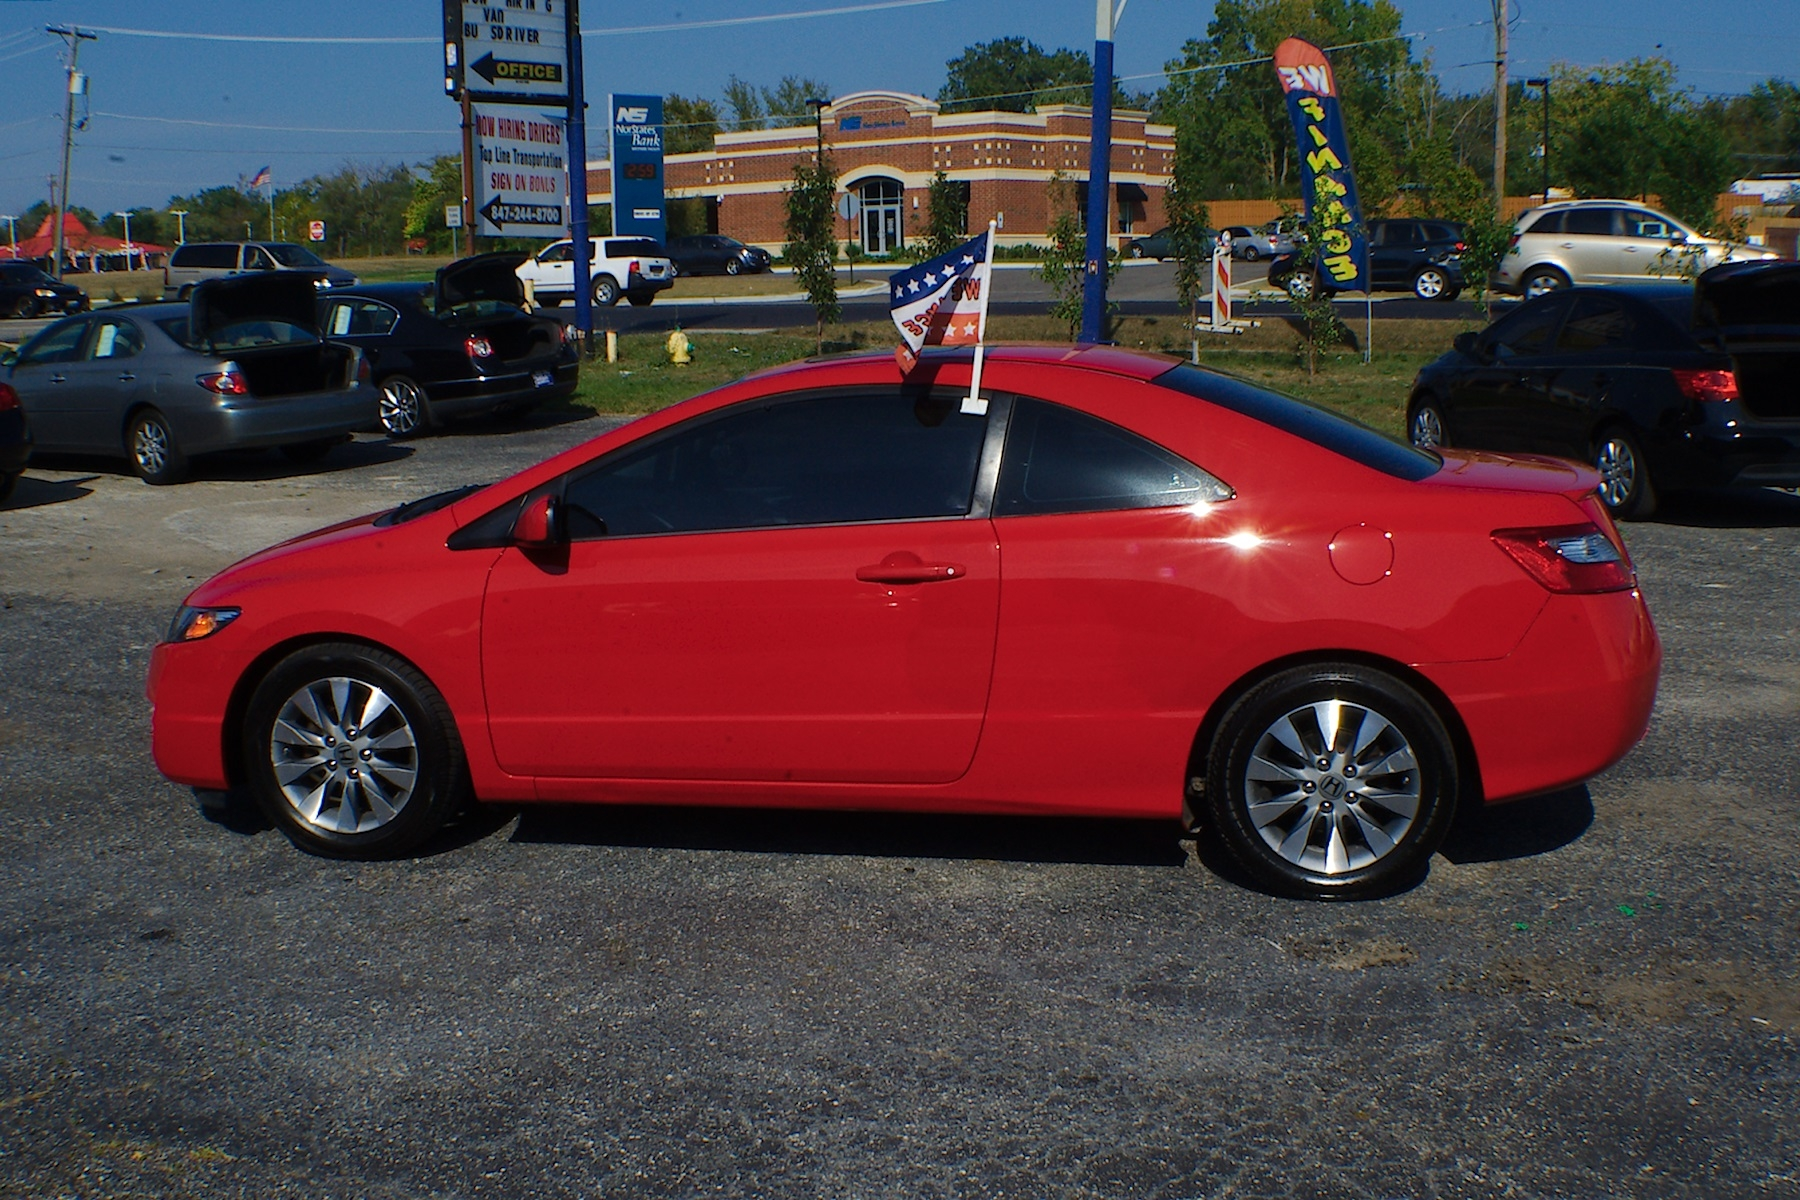 2011 Honda Civic Red Sport Coupe Used Car Sale